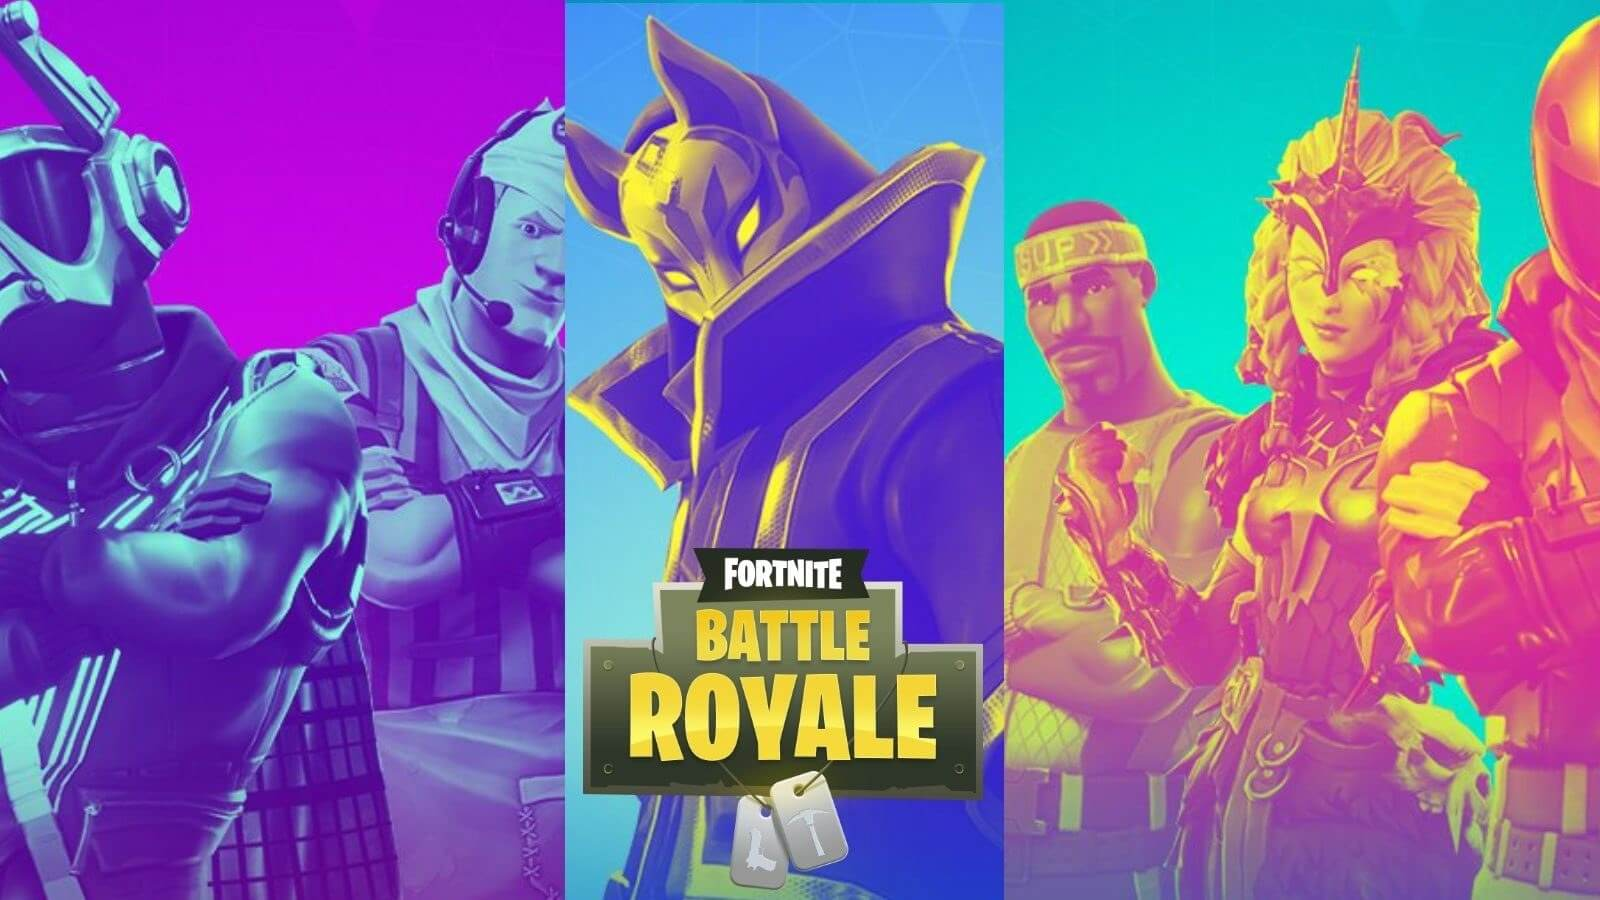 A 'Tournament' mode will be added to Fortnite with tomorrow's update